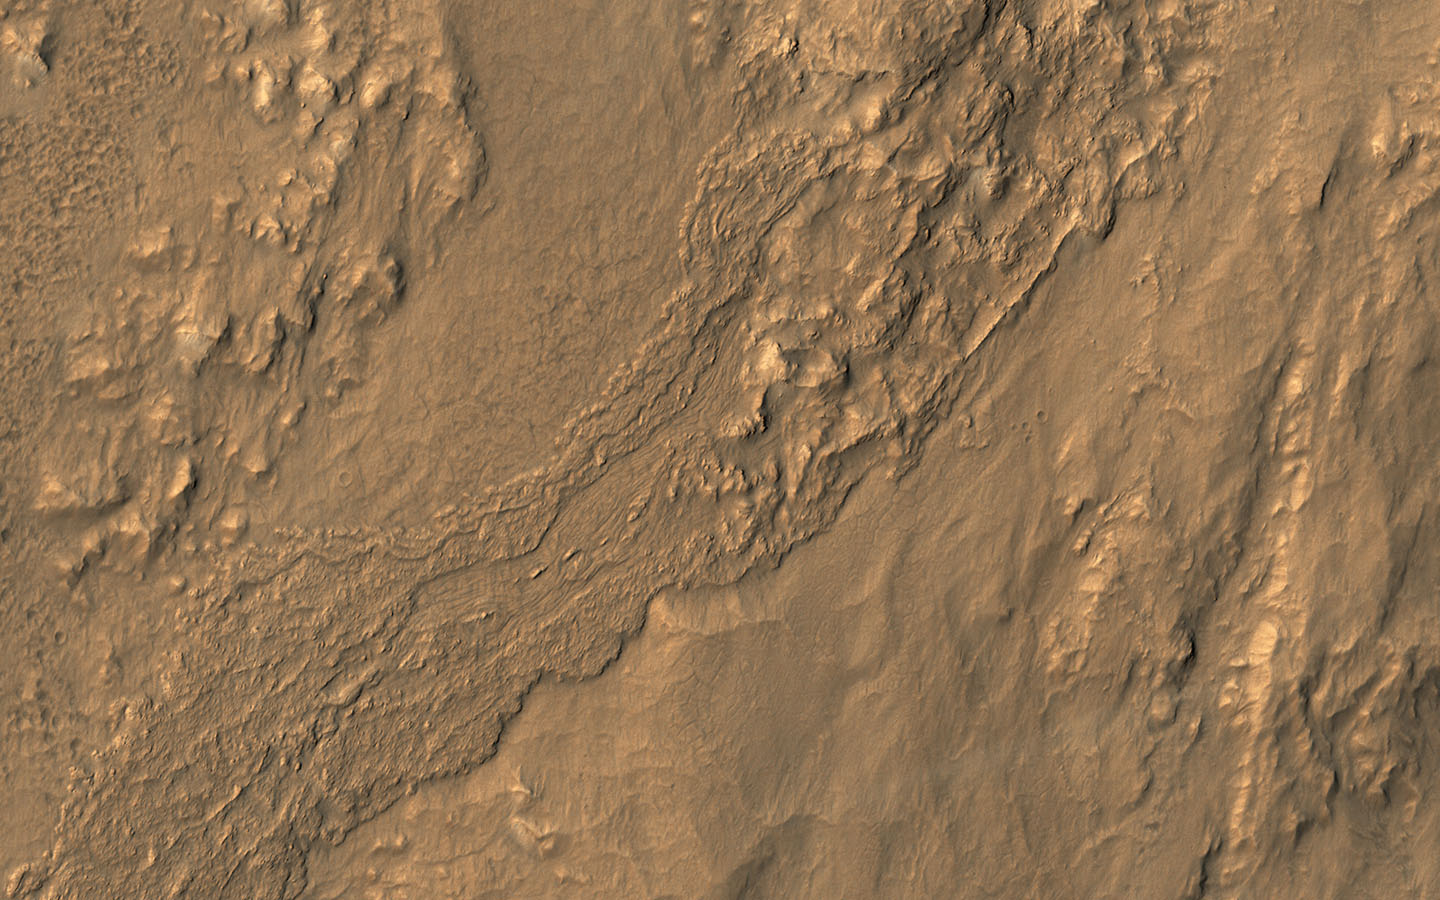 This oblique view from NASA's Mars Reconnaissance Orbiter shows a small part of the near-rim ejecta from Tooting Crater which must be either melted rock from the impact event, or a wet debris flow from melting of ice.